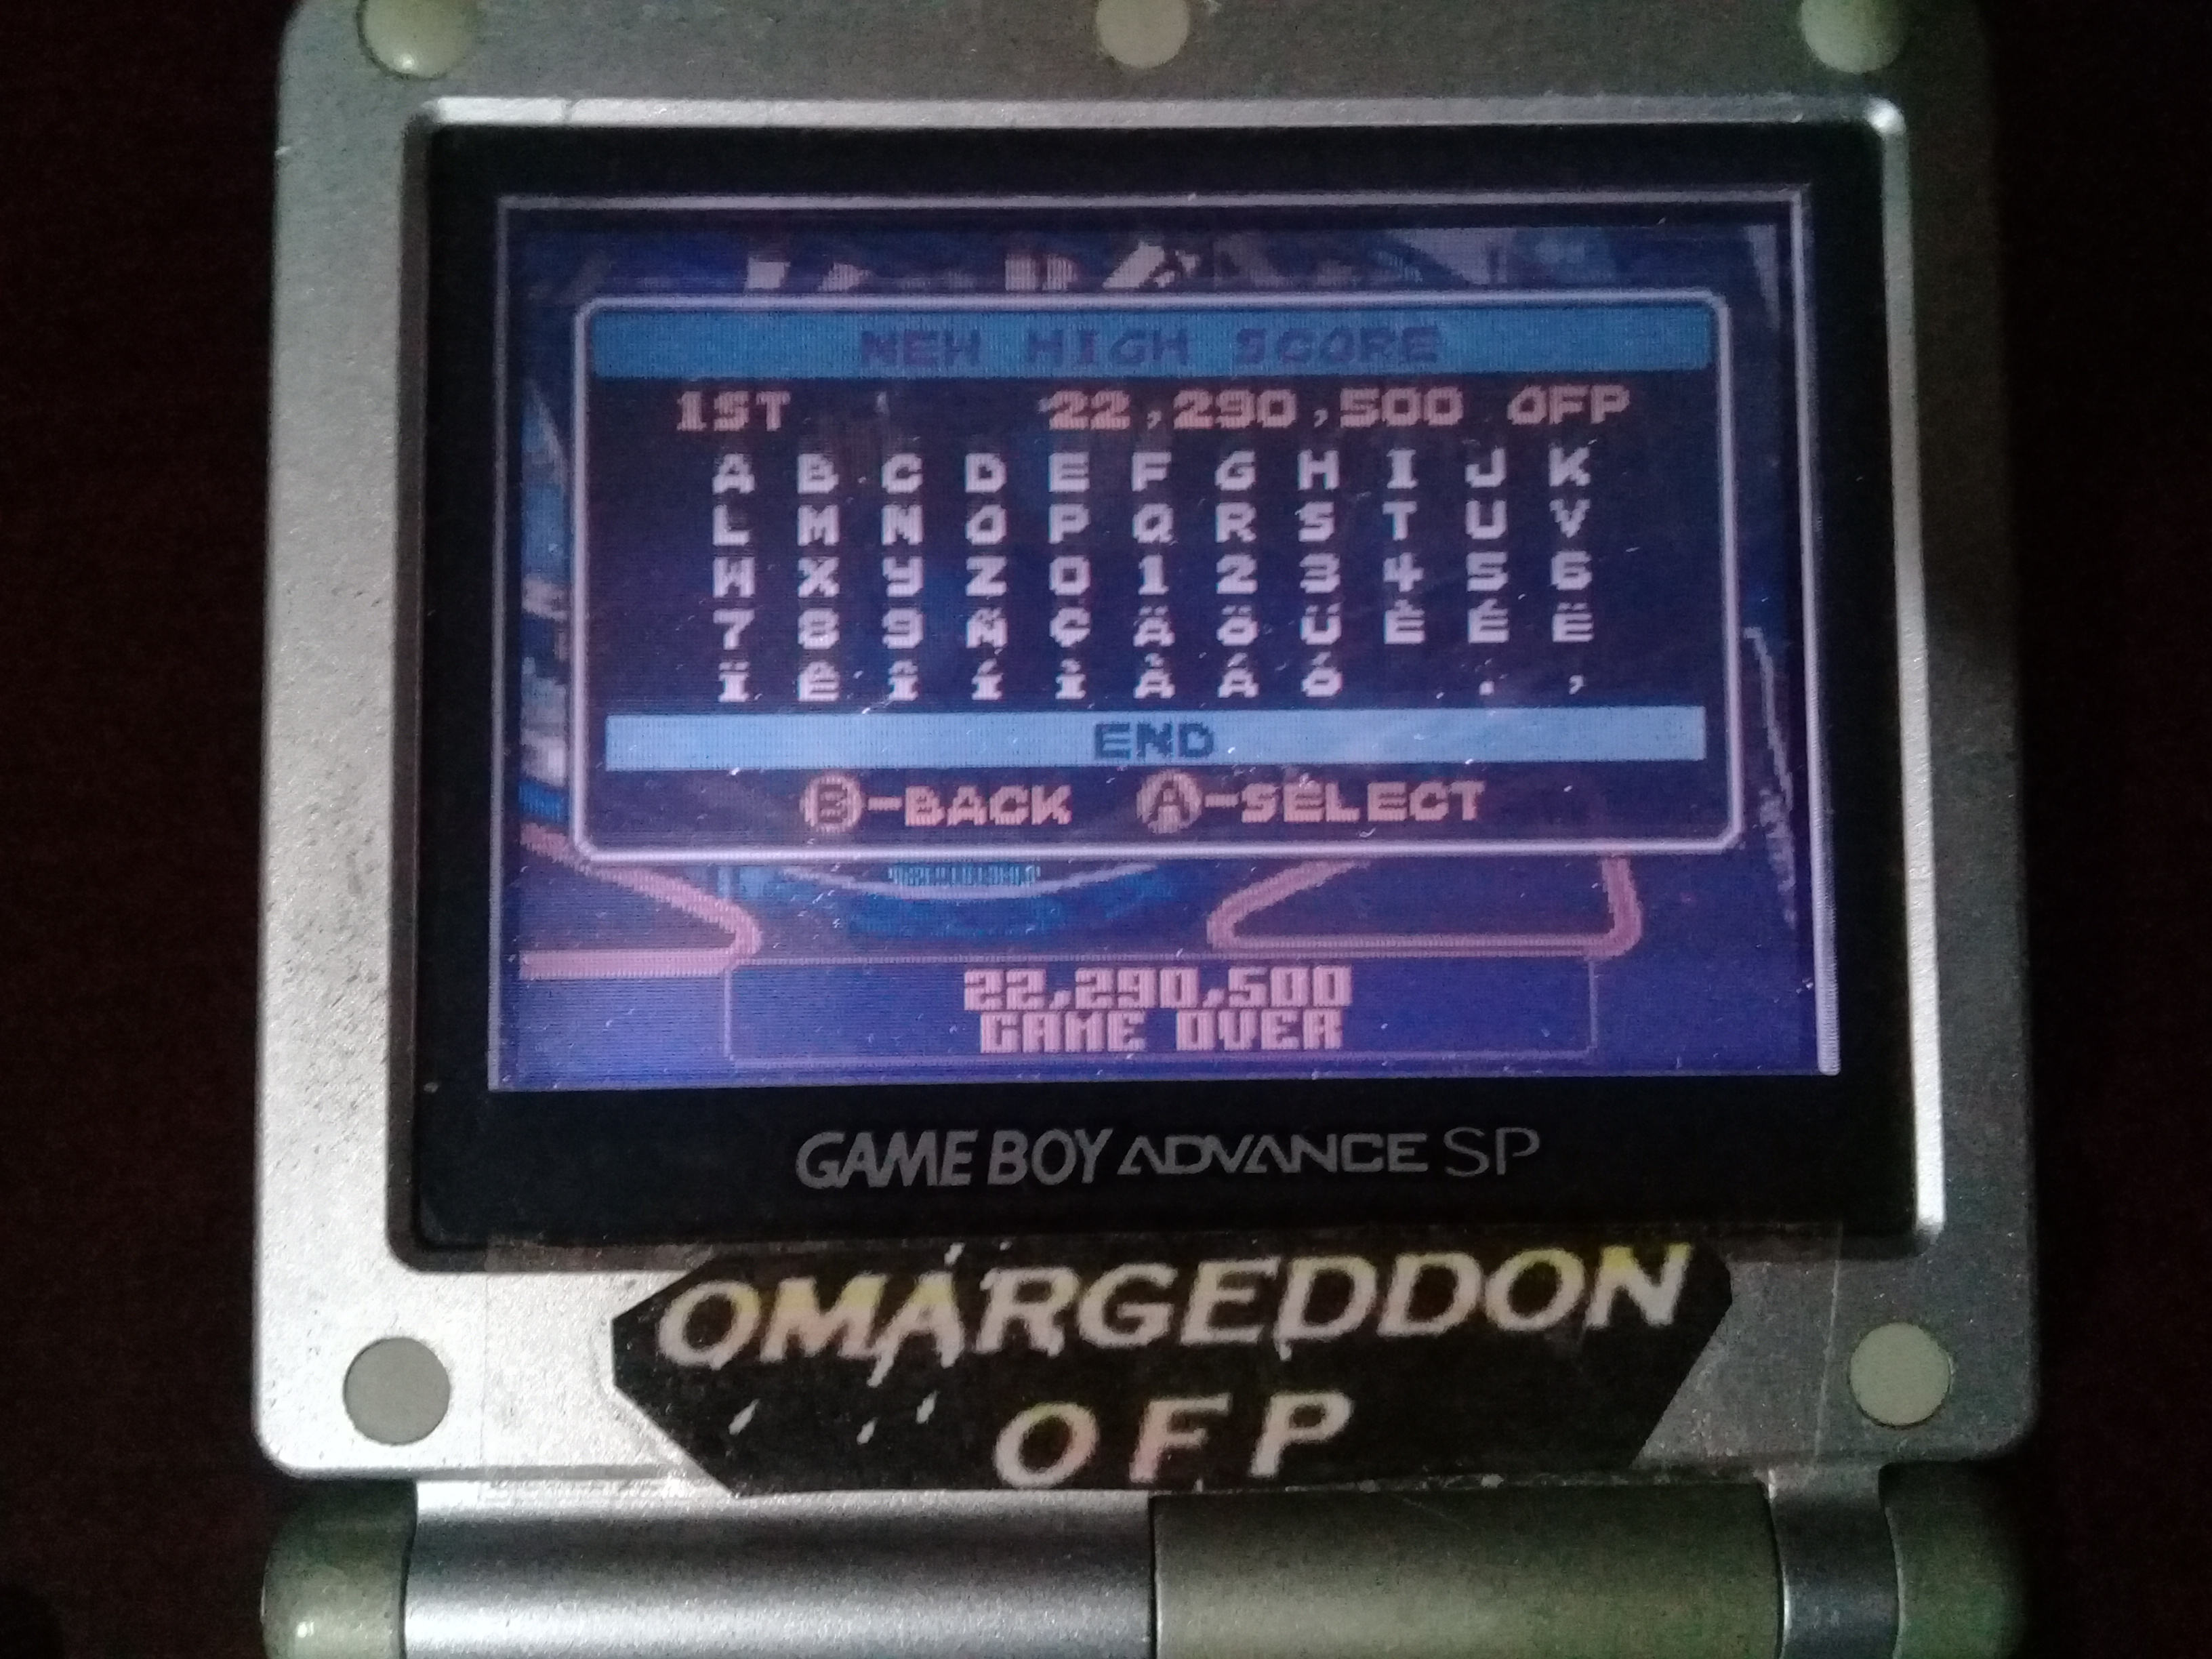 omargeddon: Pinball Advance: Jailbreak [5 Balls] [Hard] (GBA) 22,290,500 points on 2019-10-13 11:23:22